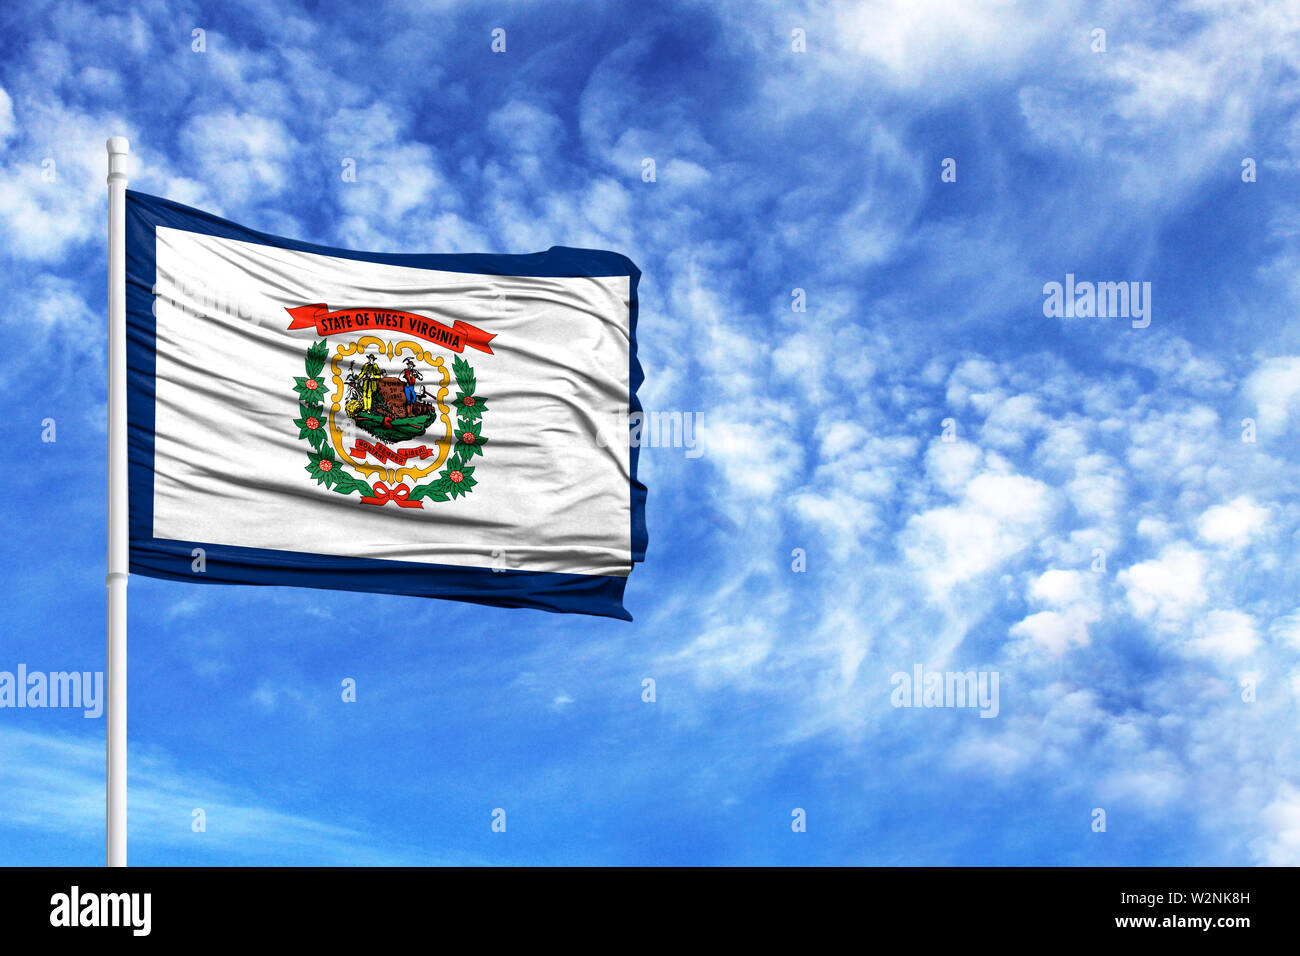 National flag State of West Virginia on a flagpole in front of blue sky - Stock Image